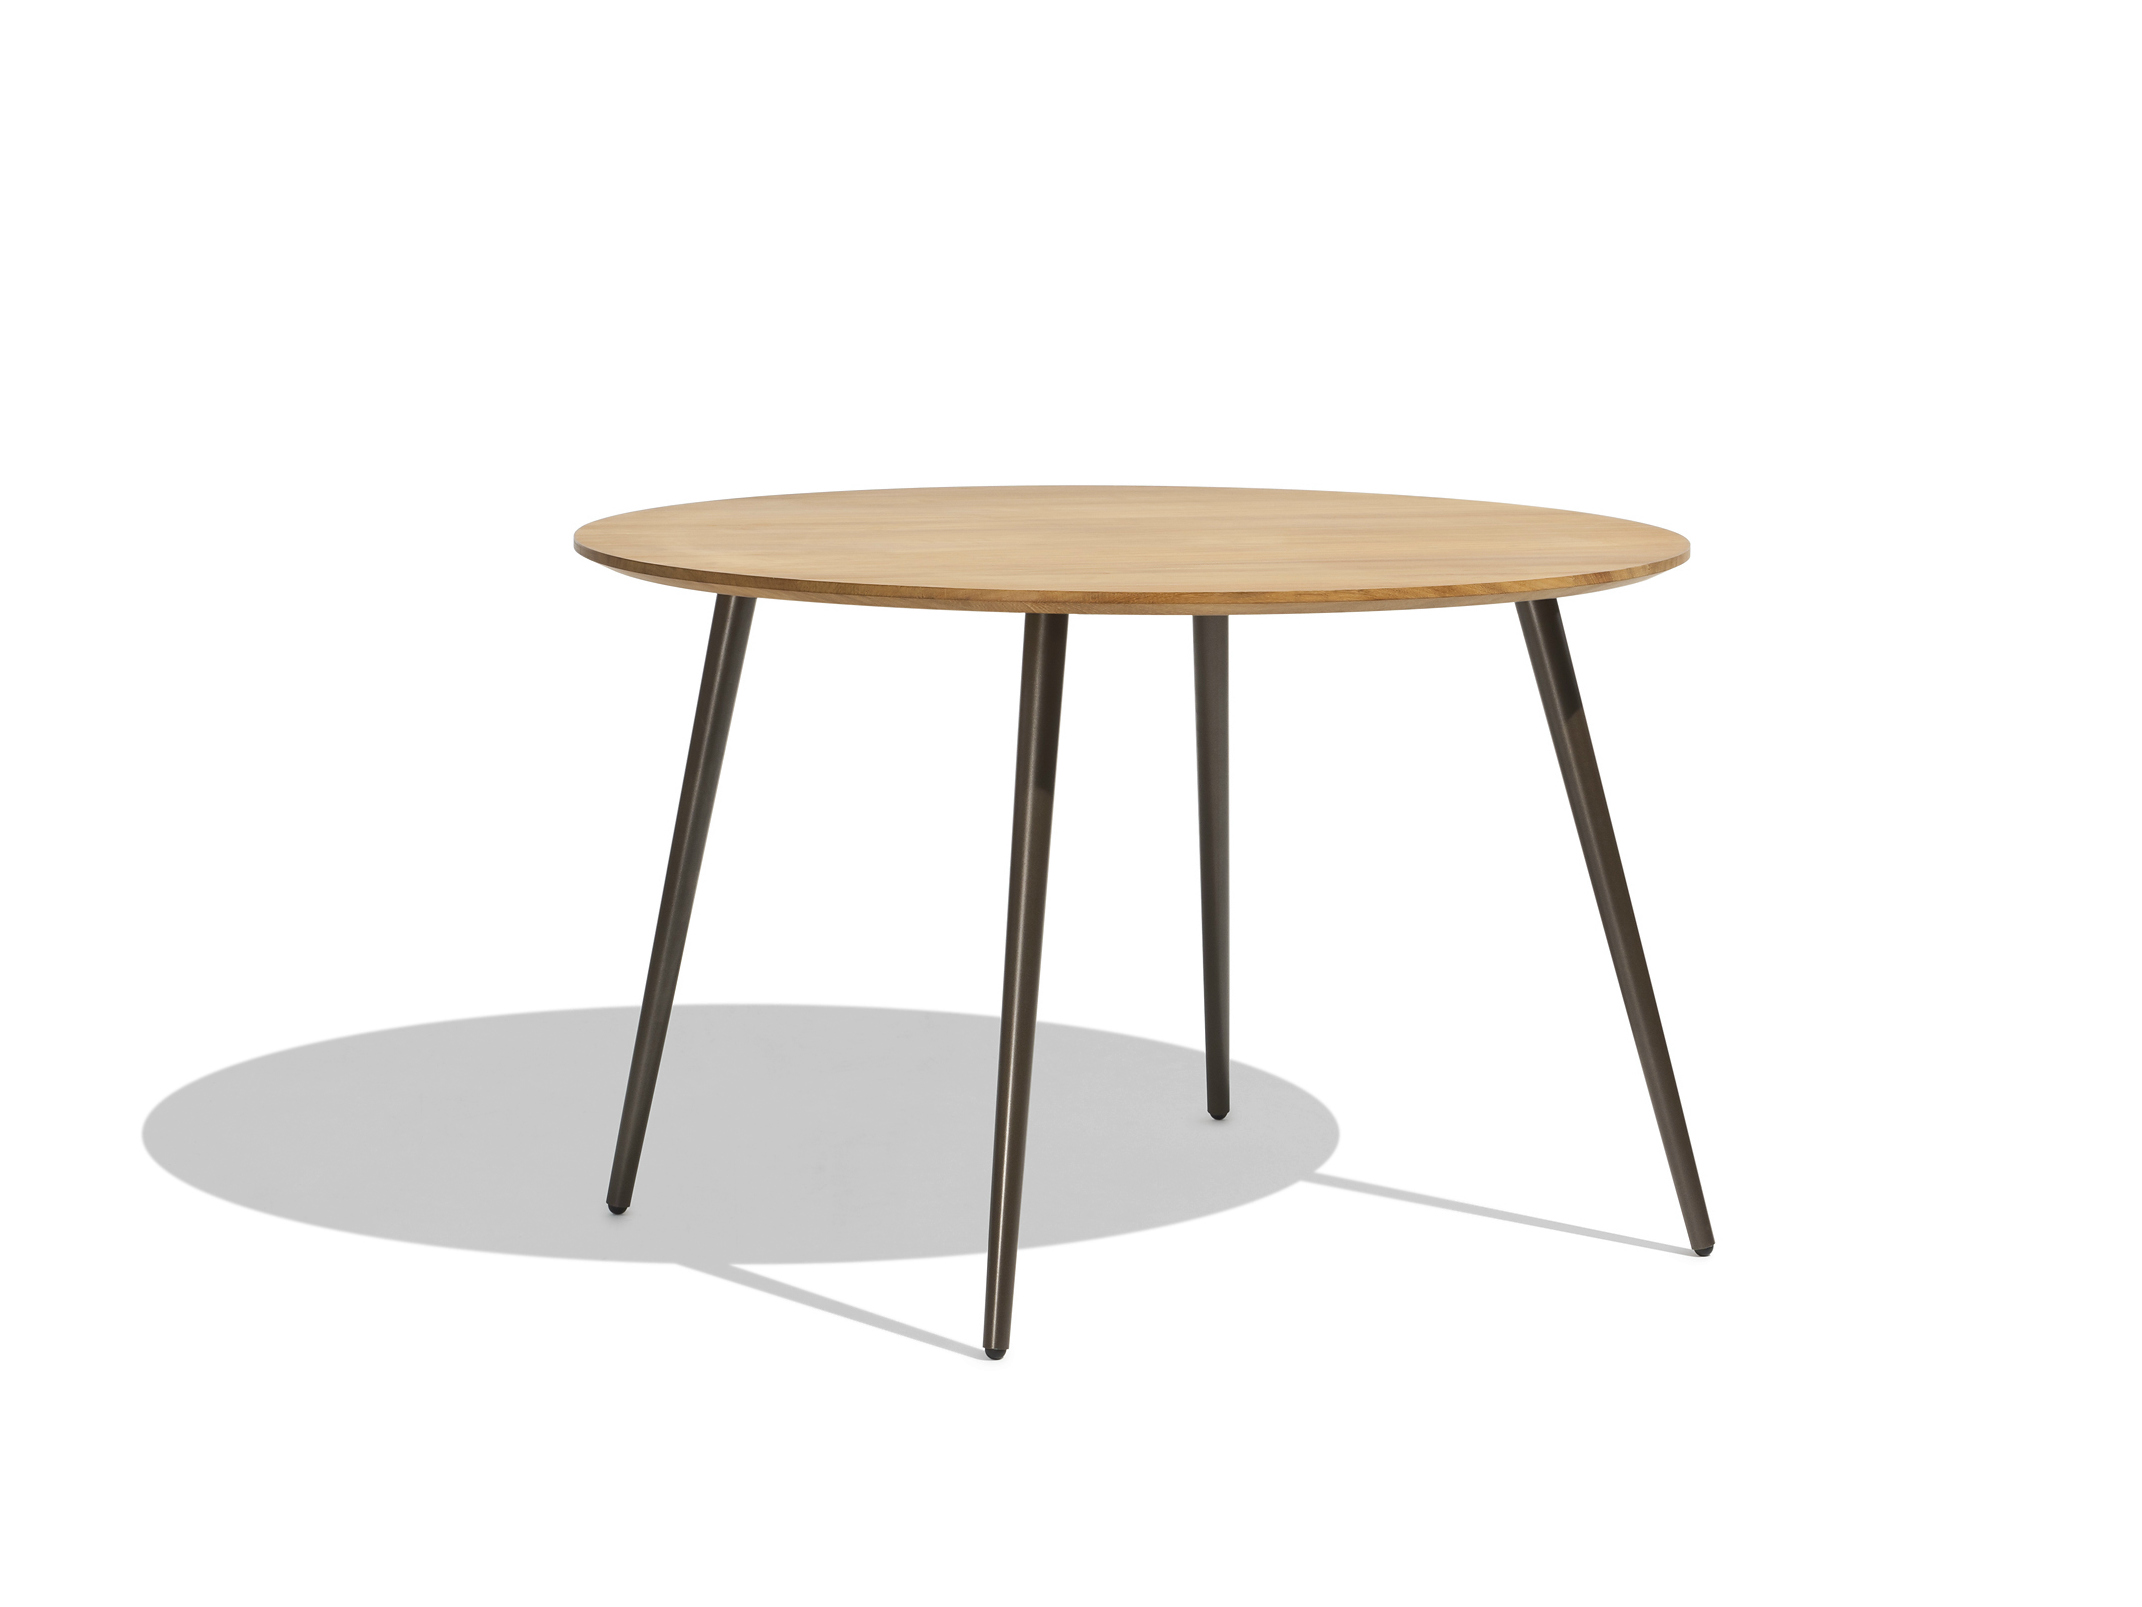 Vint round table by bivaq design andr s bluth - Table ronde plateau verre ...